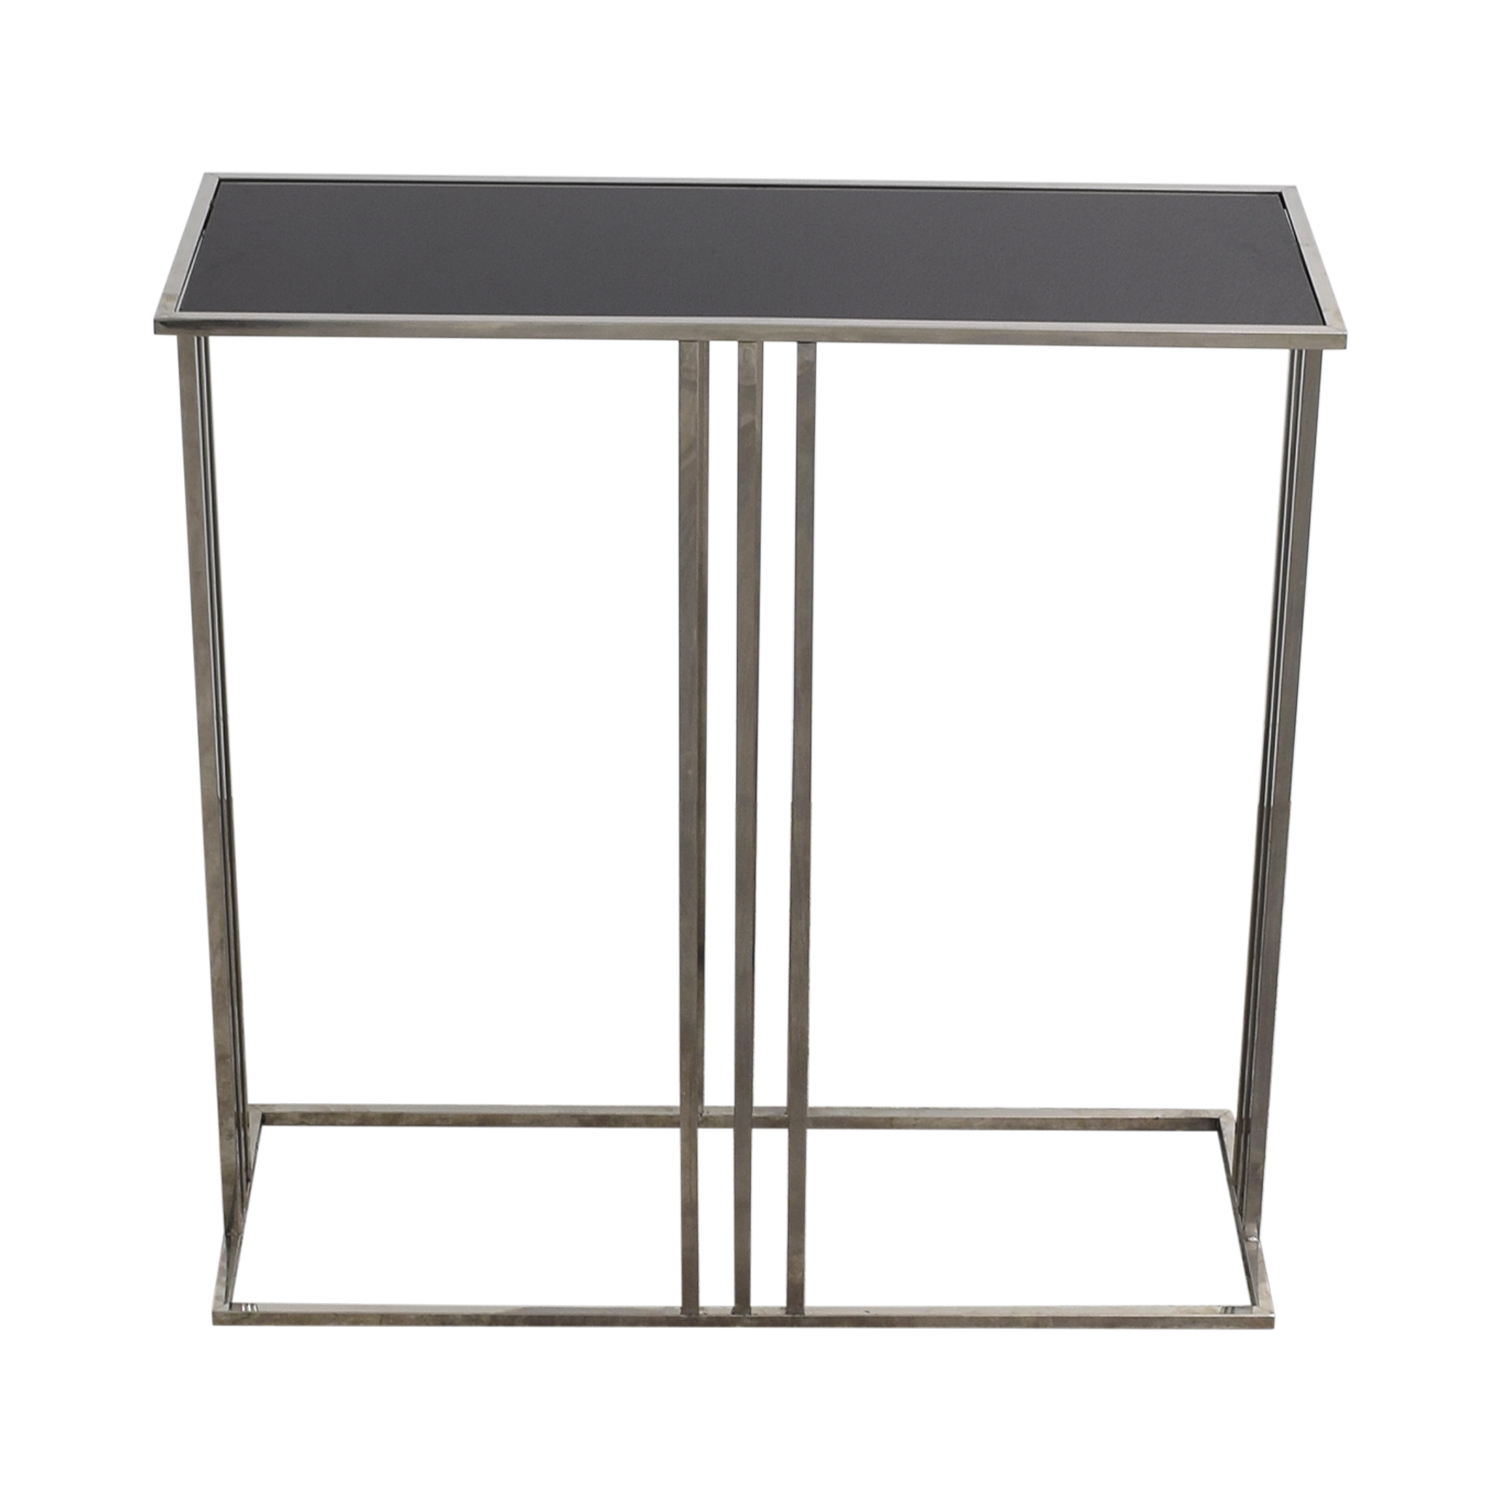 shop HomeGoods Black and Silver Entryway Table HomeGoods Utility Tables